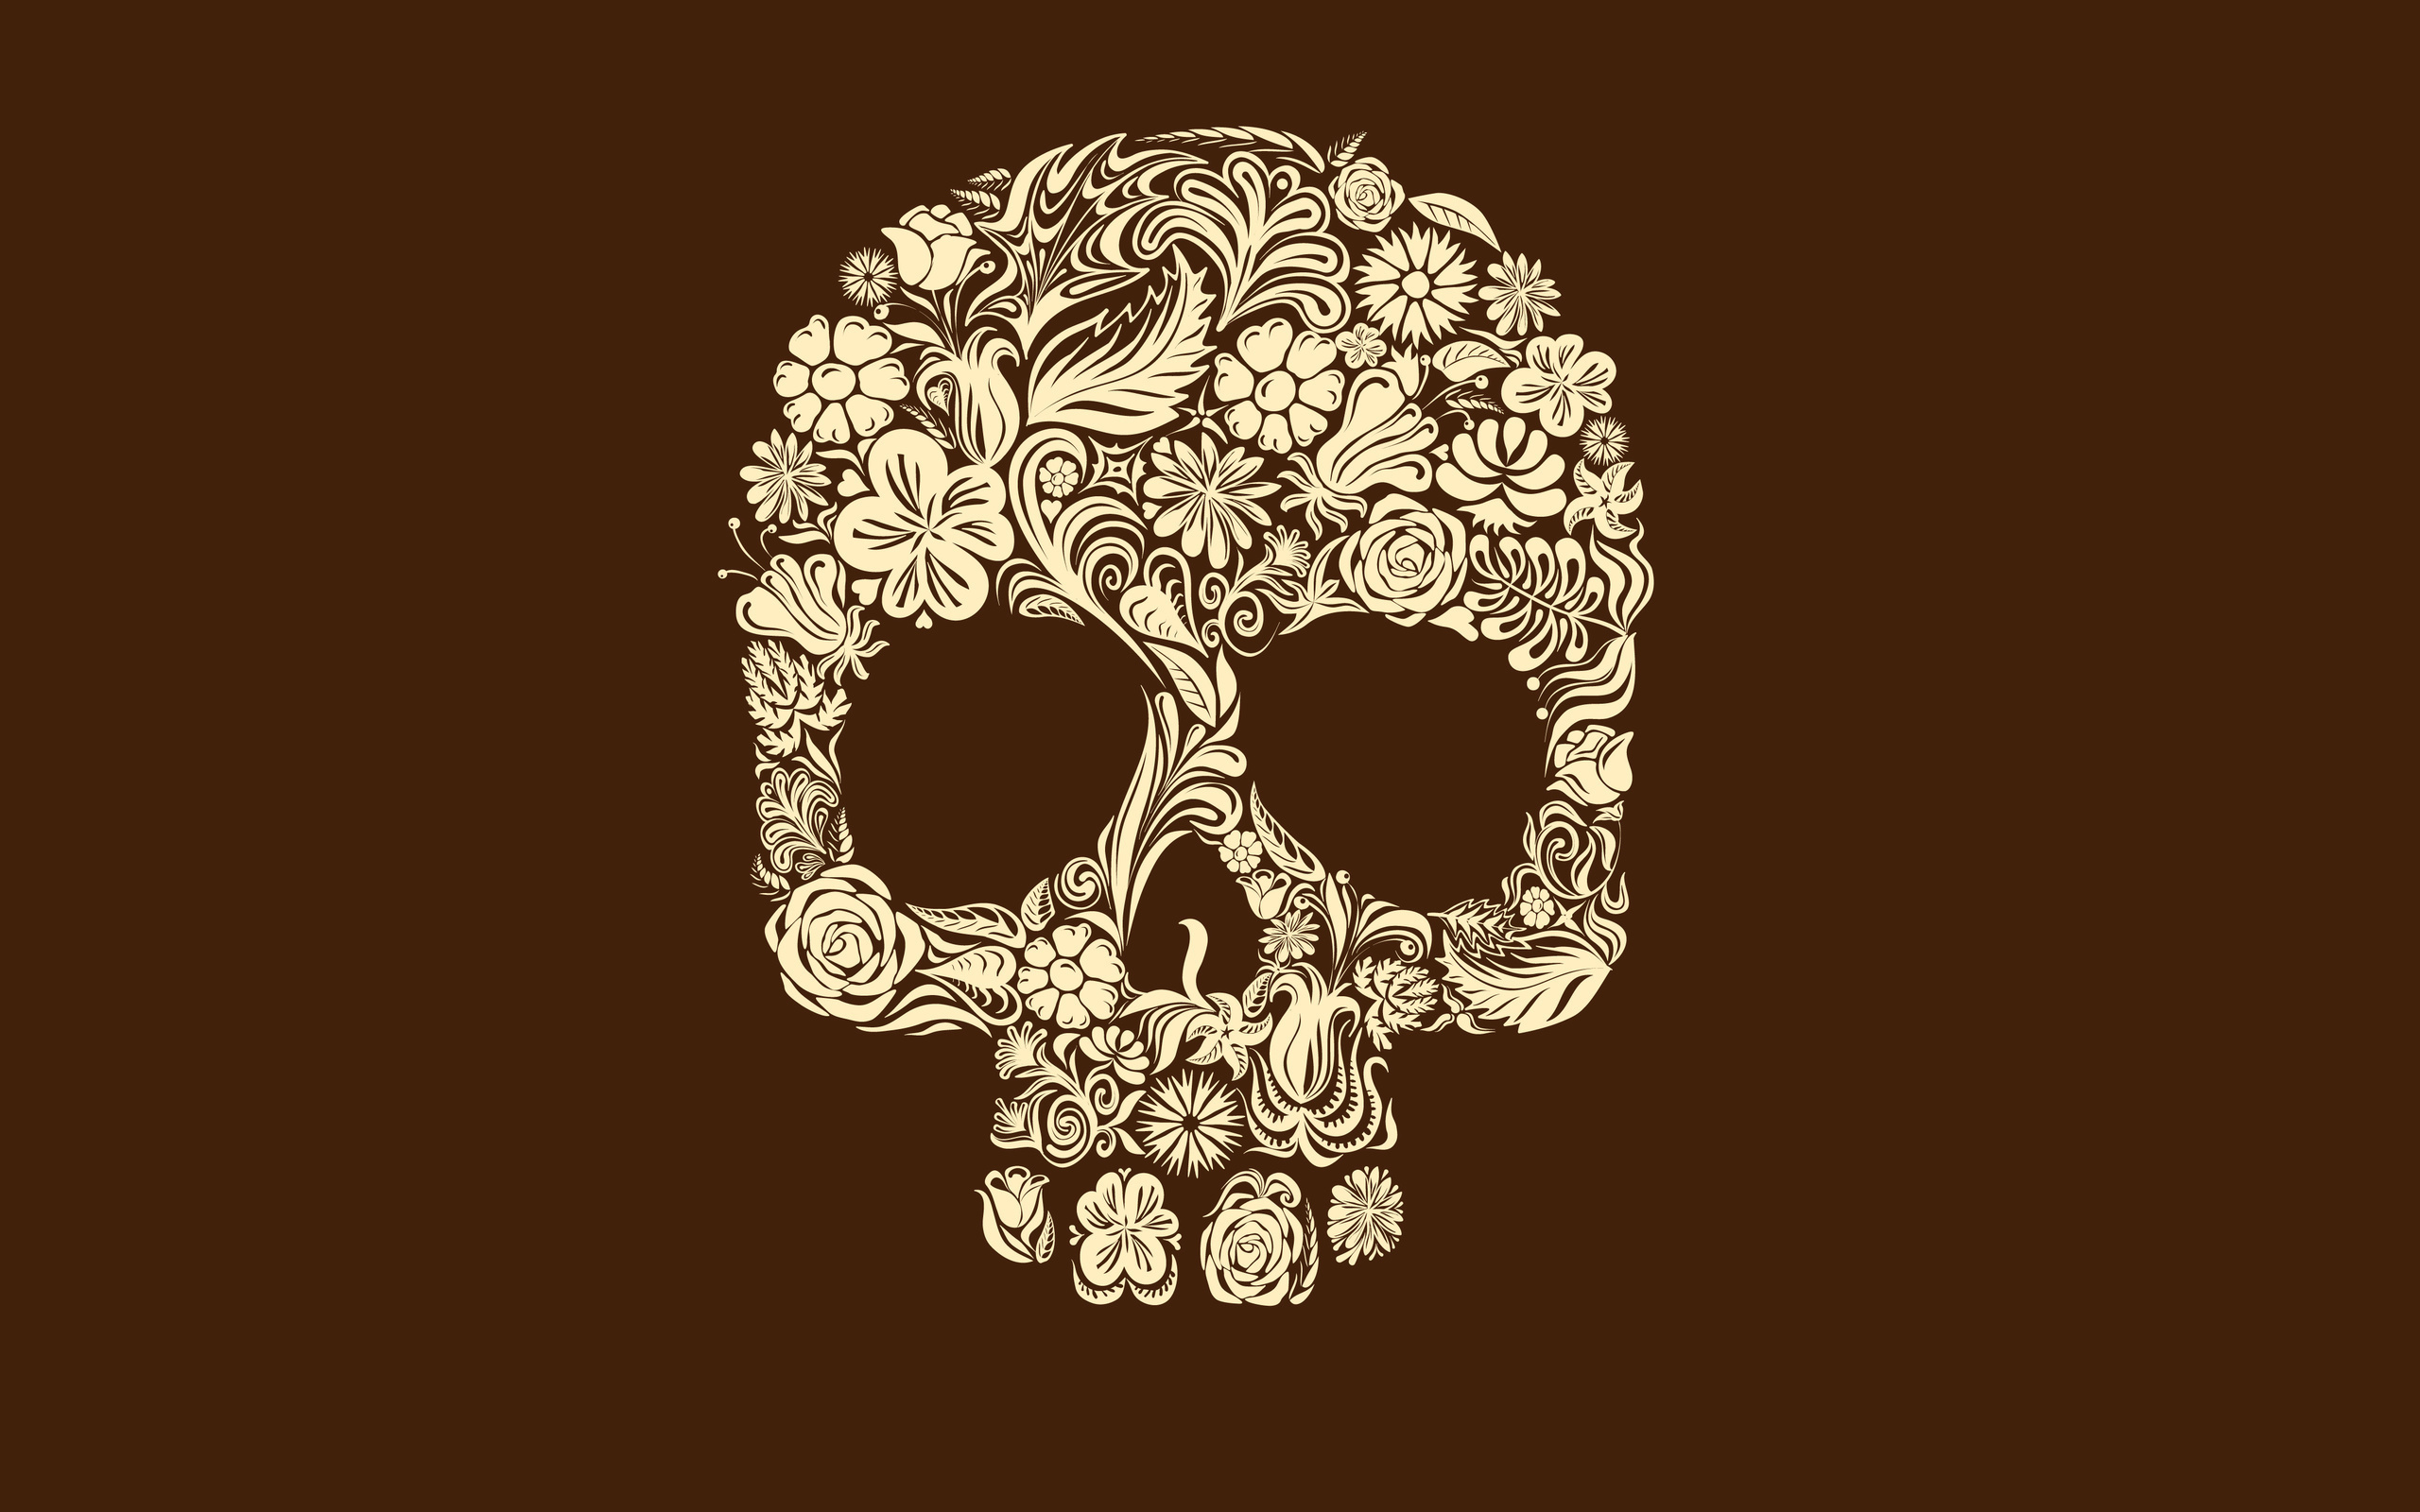 17637 download wallpaper Background, Death, Patterns screensavers and pictures for free